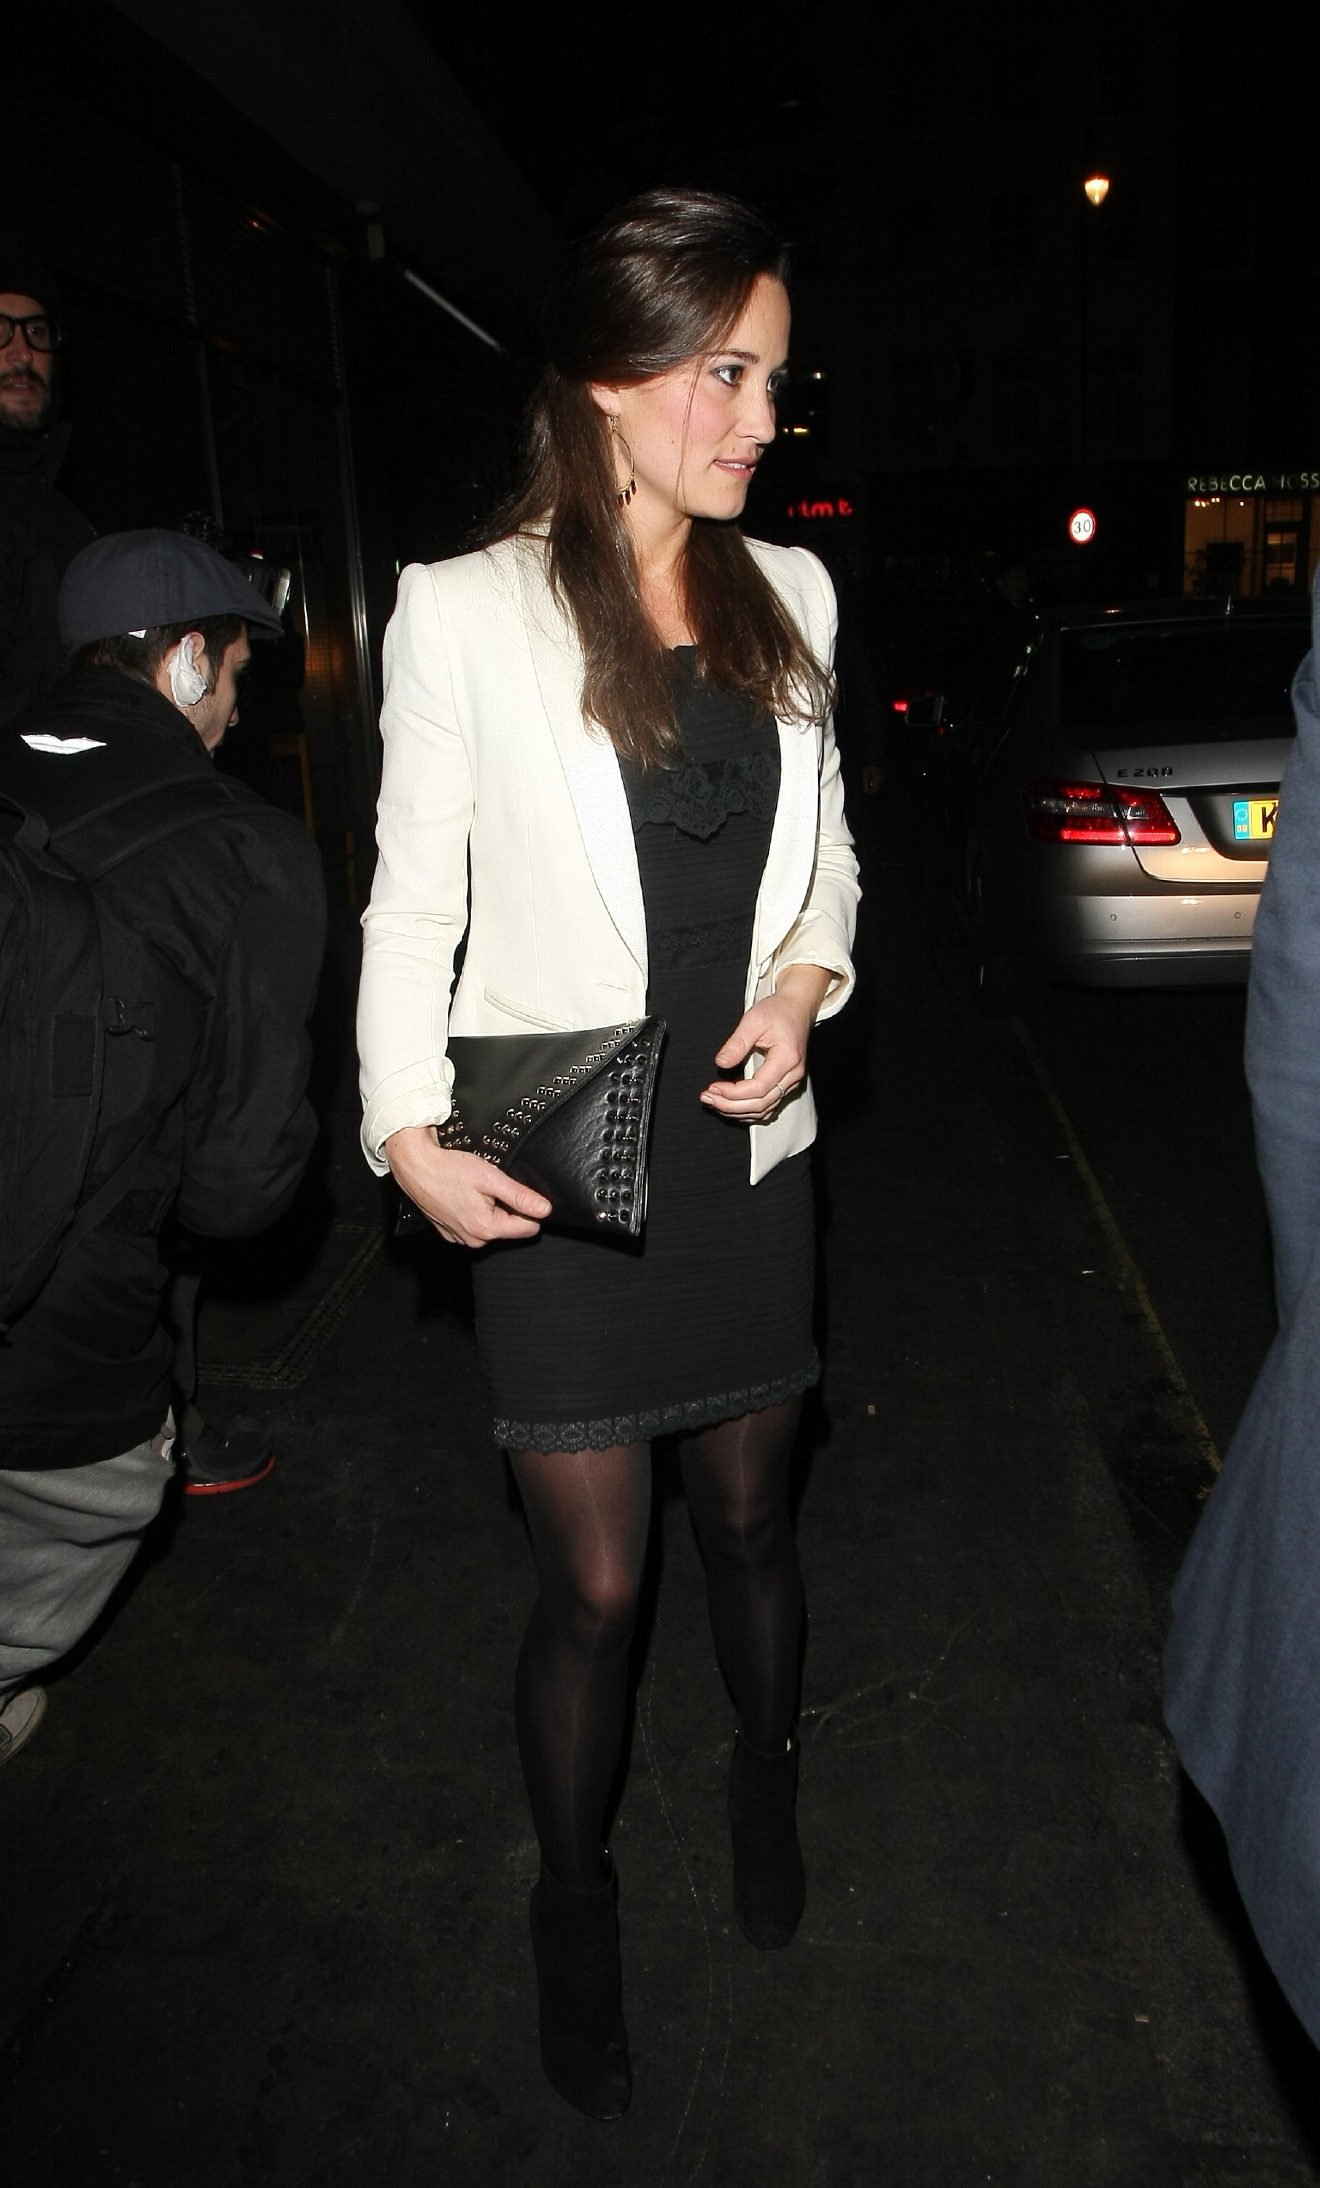 Pippa Middleton leaves Roka restaurant London, England - 09.11.12  Featuring: Pippa Middleton Where: London, United Kingdom When: 09 Nov 2012 Credit: WENN